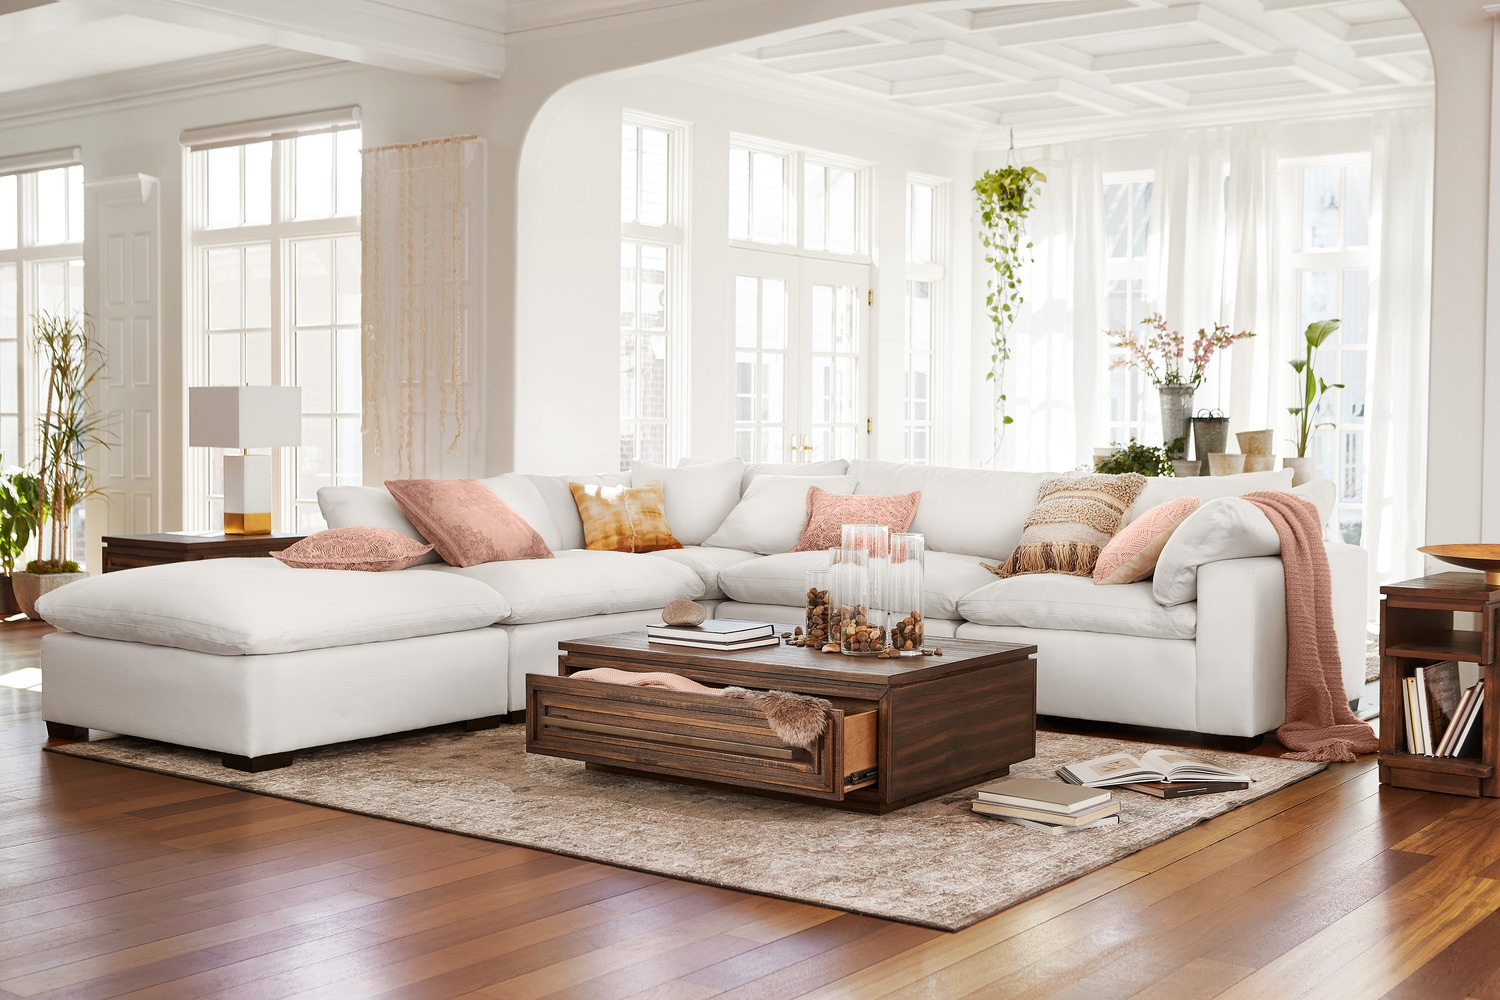 Ottoman Or Coffee Table For Sectional 3